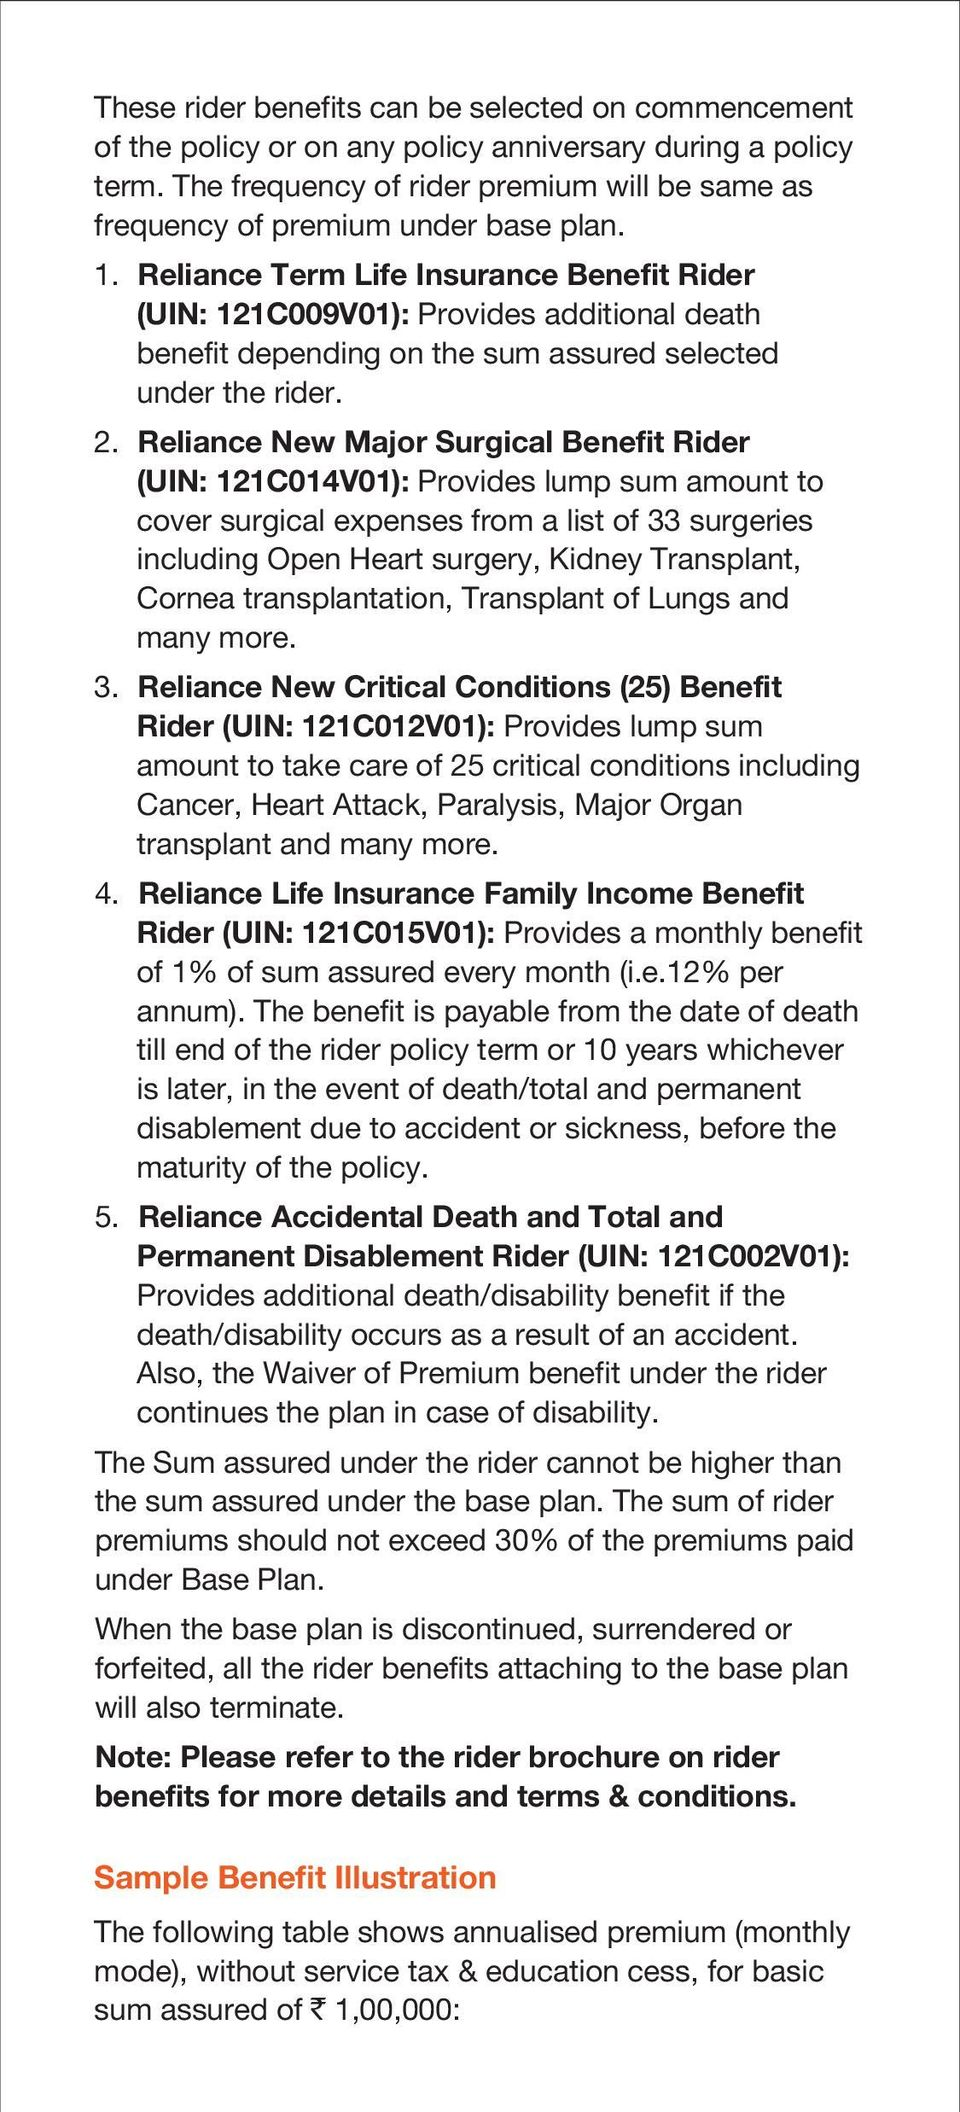 Reliance Term Life Insurance Benefit Rider (UIN: 121C009V01): Provides additional death benefit depending on the sum assured selected under the rider. 2.